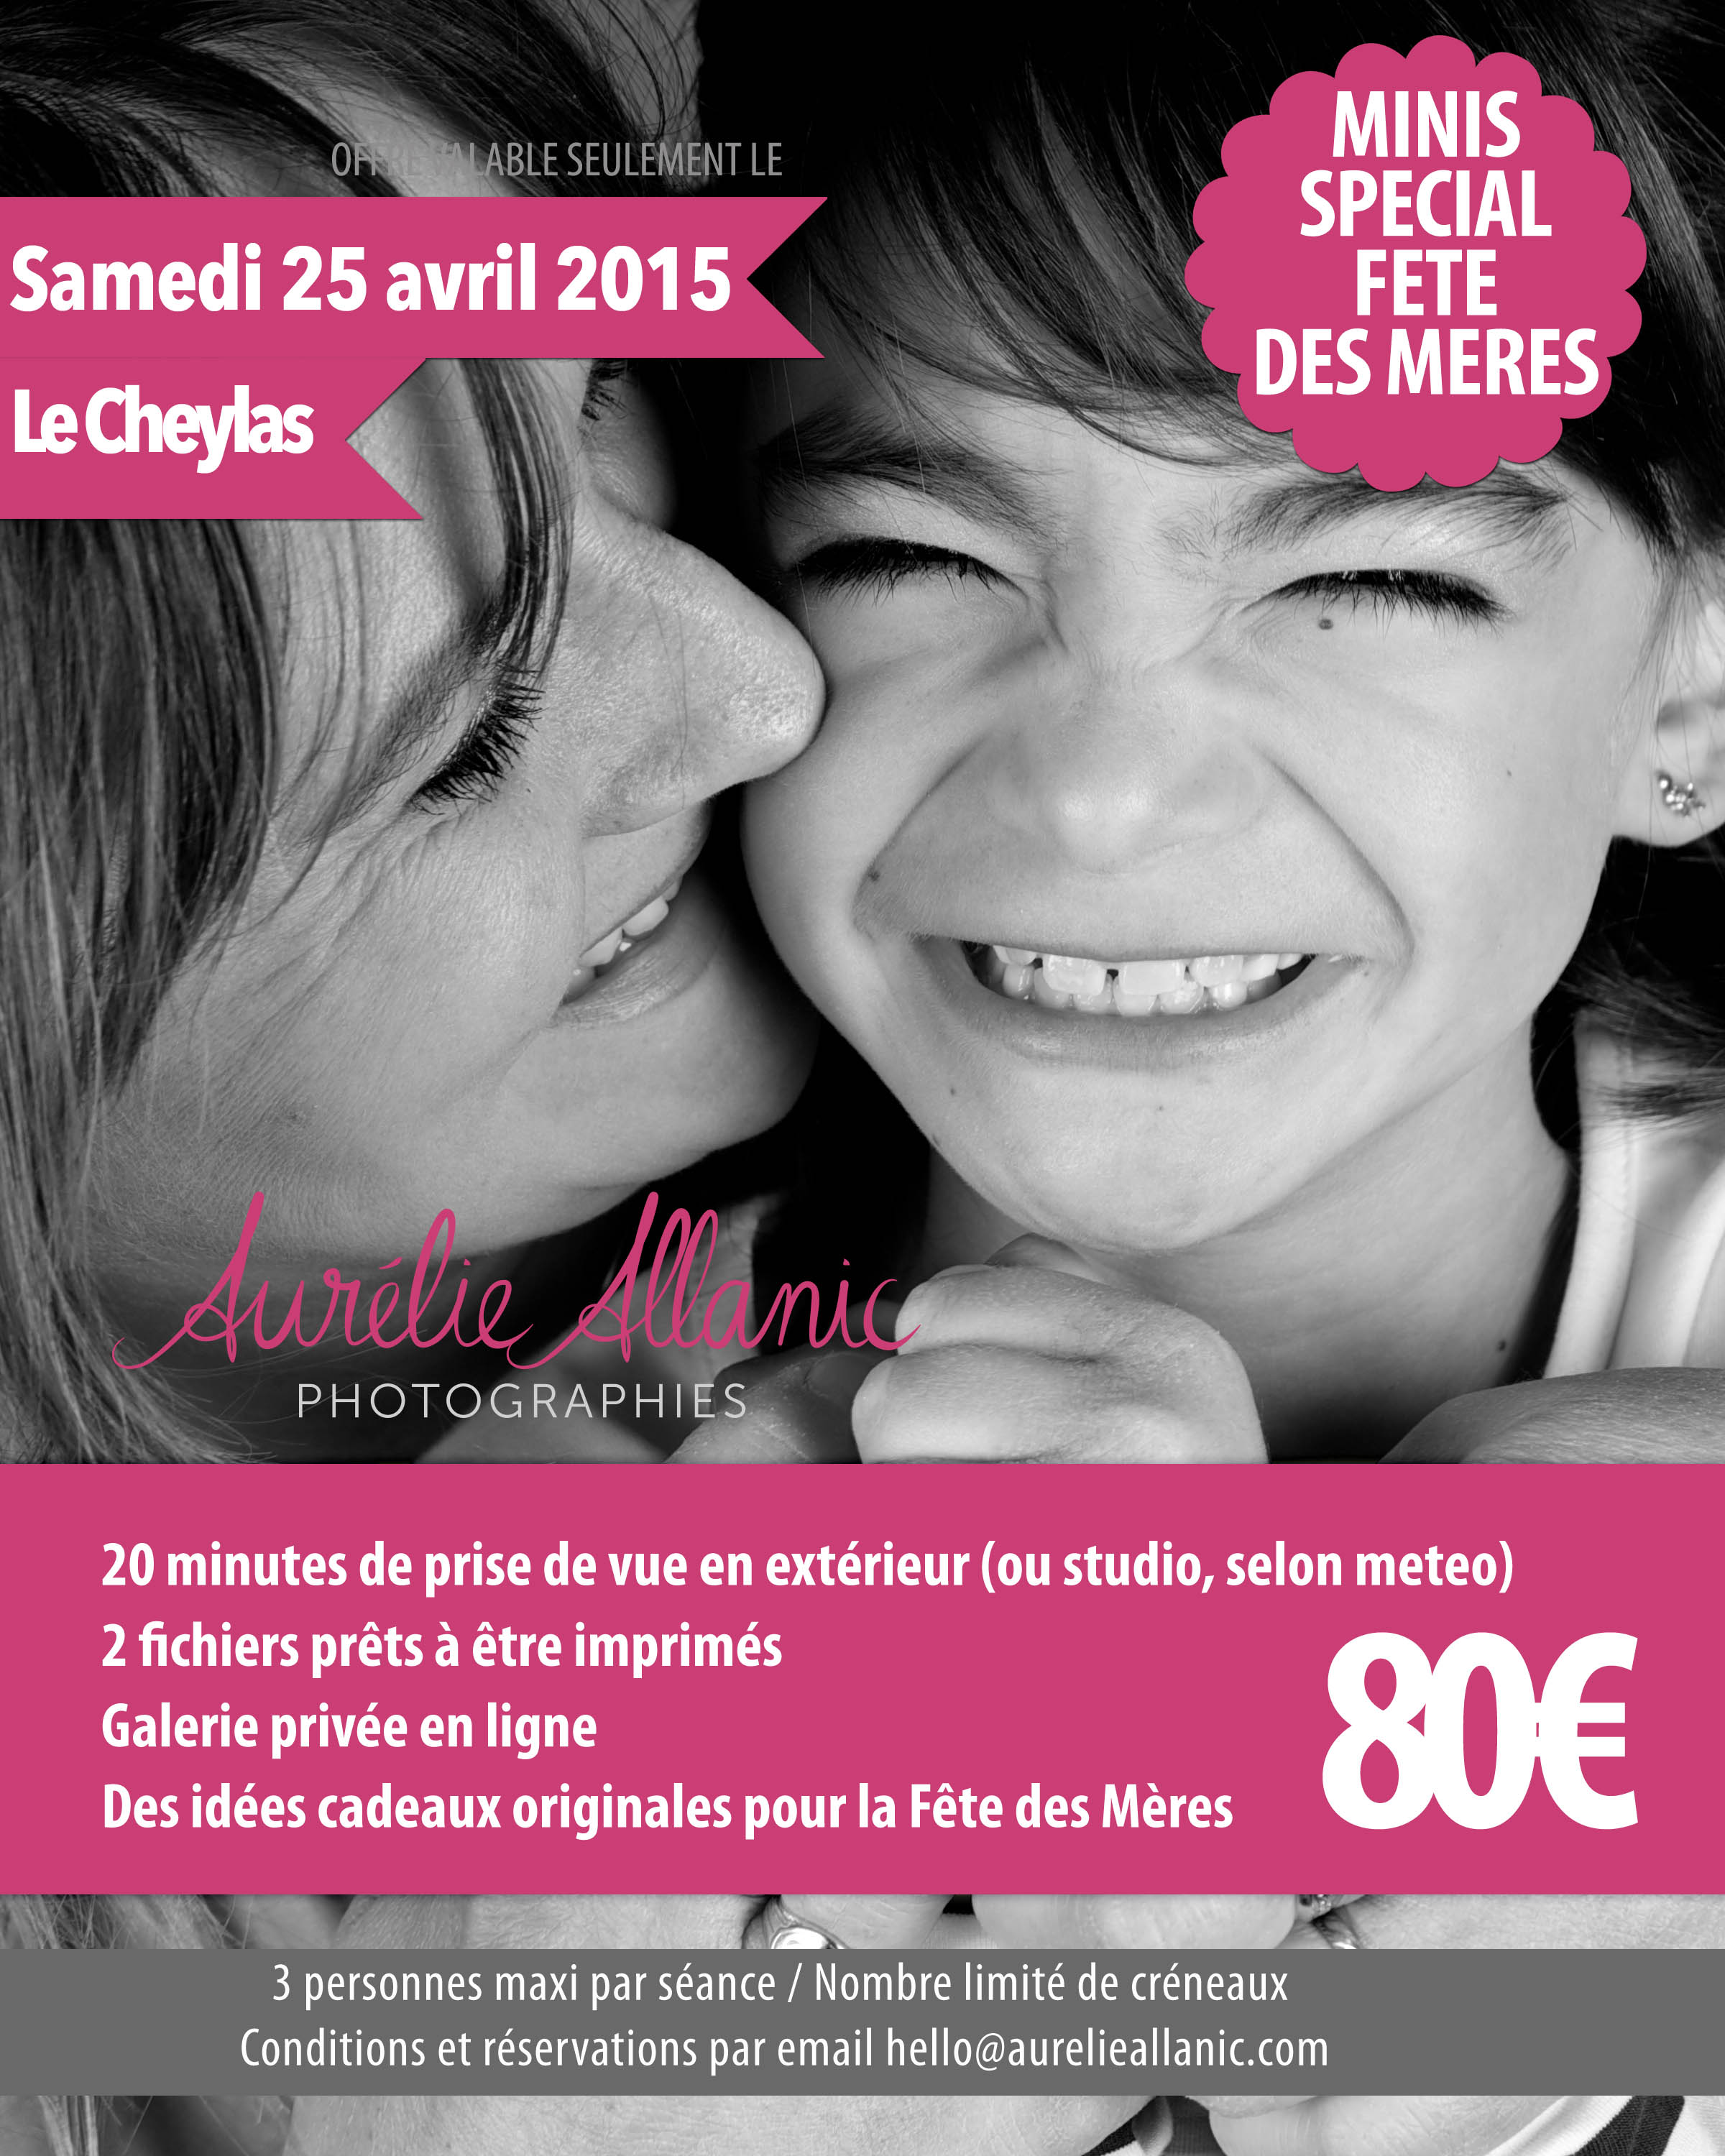 Mini seance photo fete des meres photographe grenoble photographe chambery